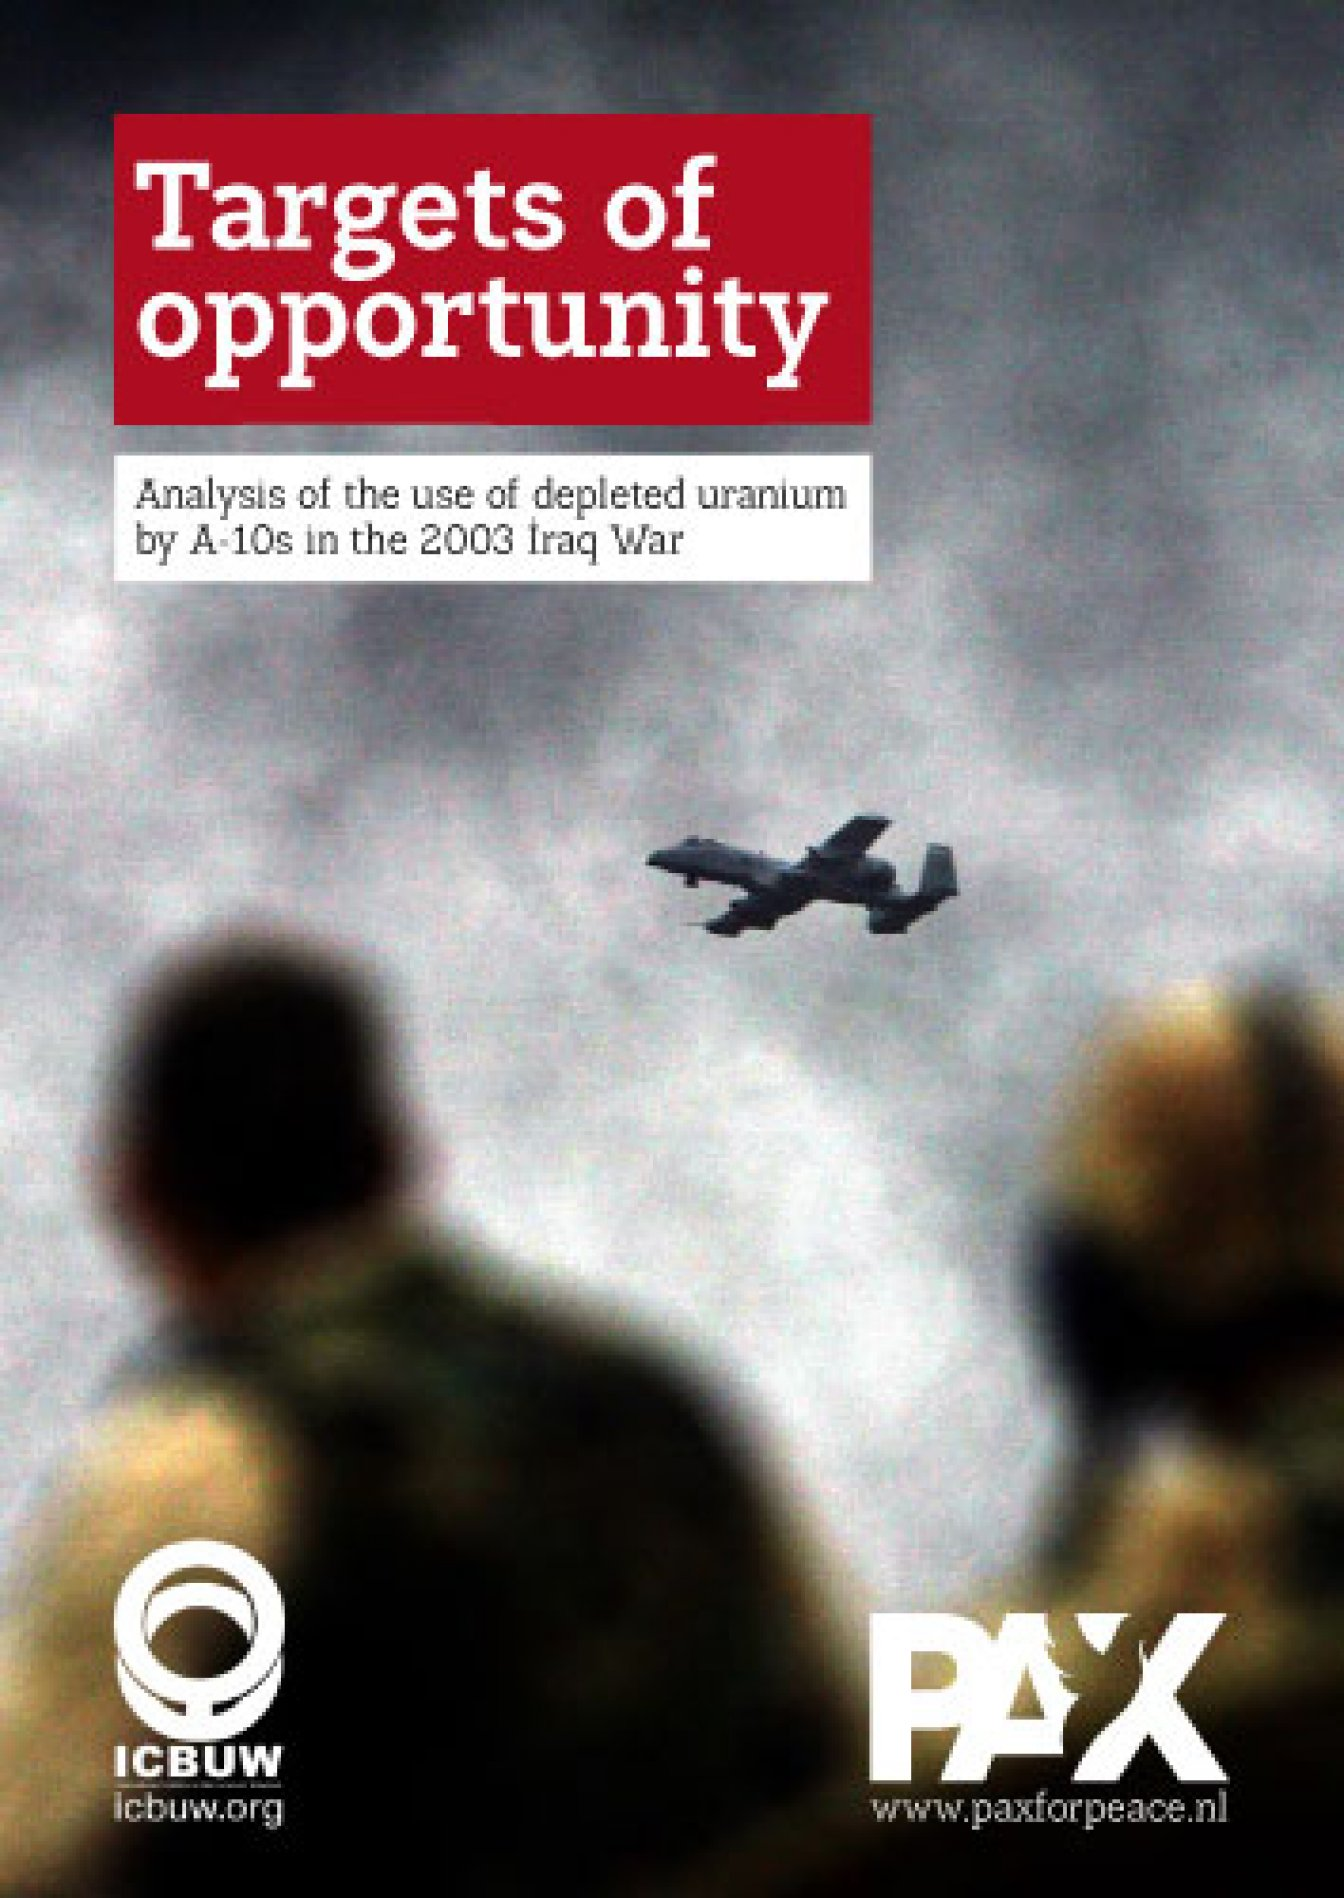 Cover of the report Targets of opportunity